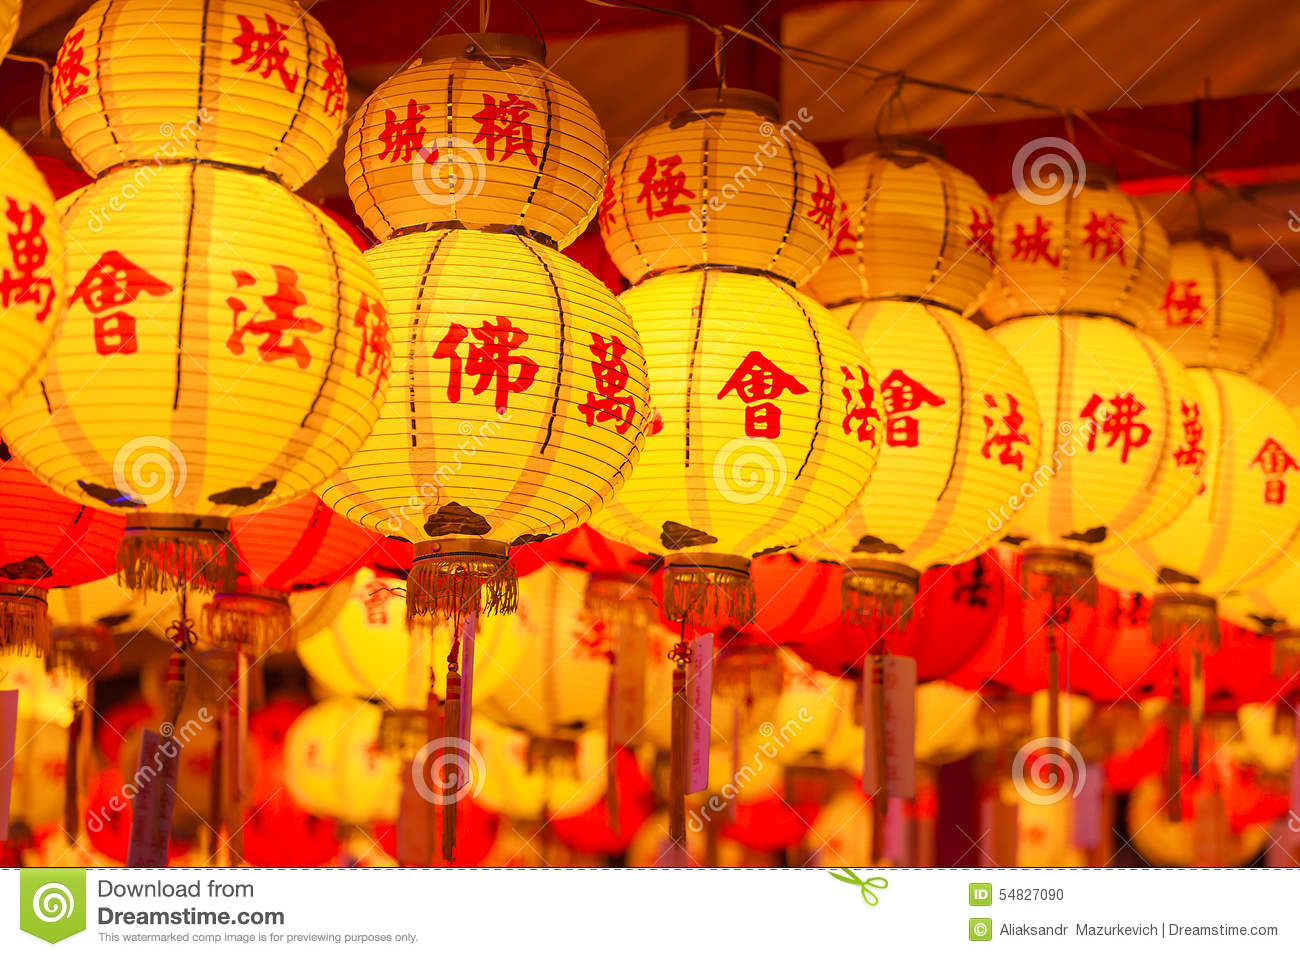 essay chinese festival in malaysia They migrated from southern india to malaysia during ethnic groups in malaysian culture cultural studies essay print of their dish as well as in the festival.